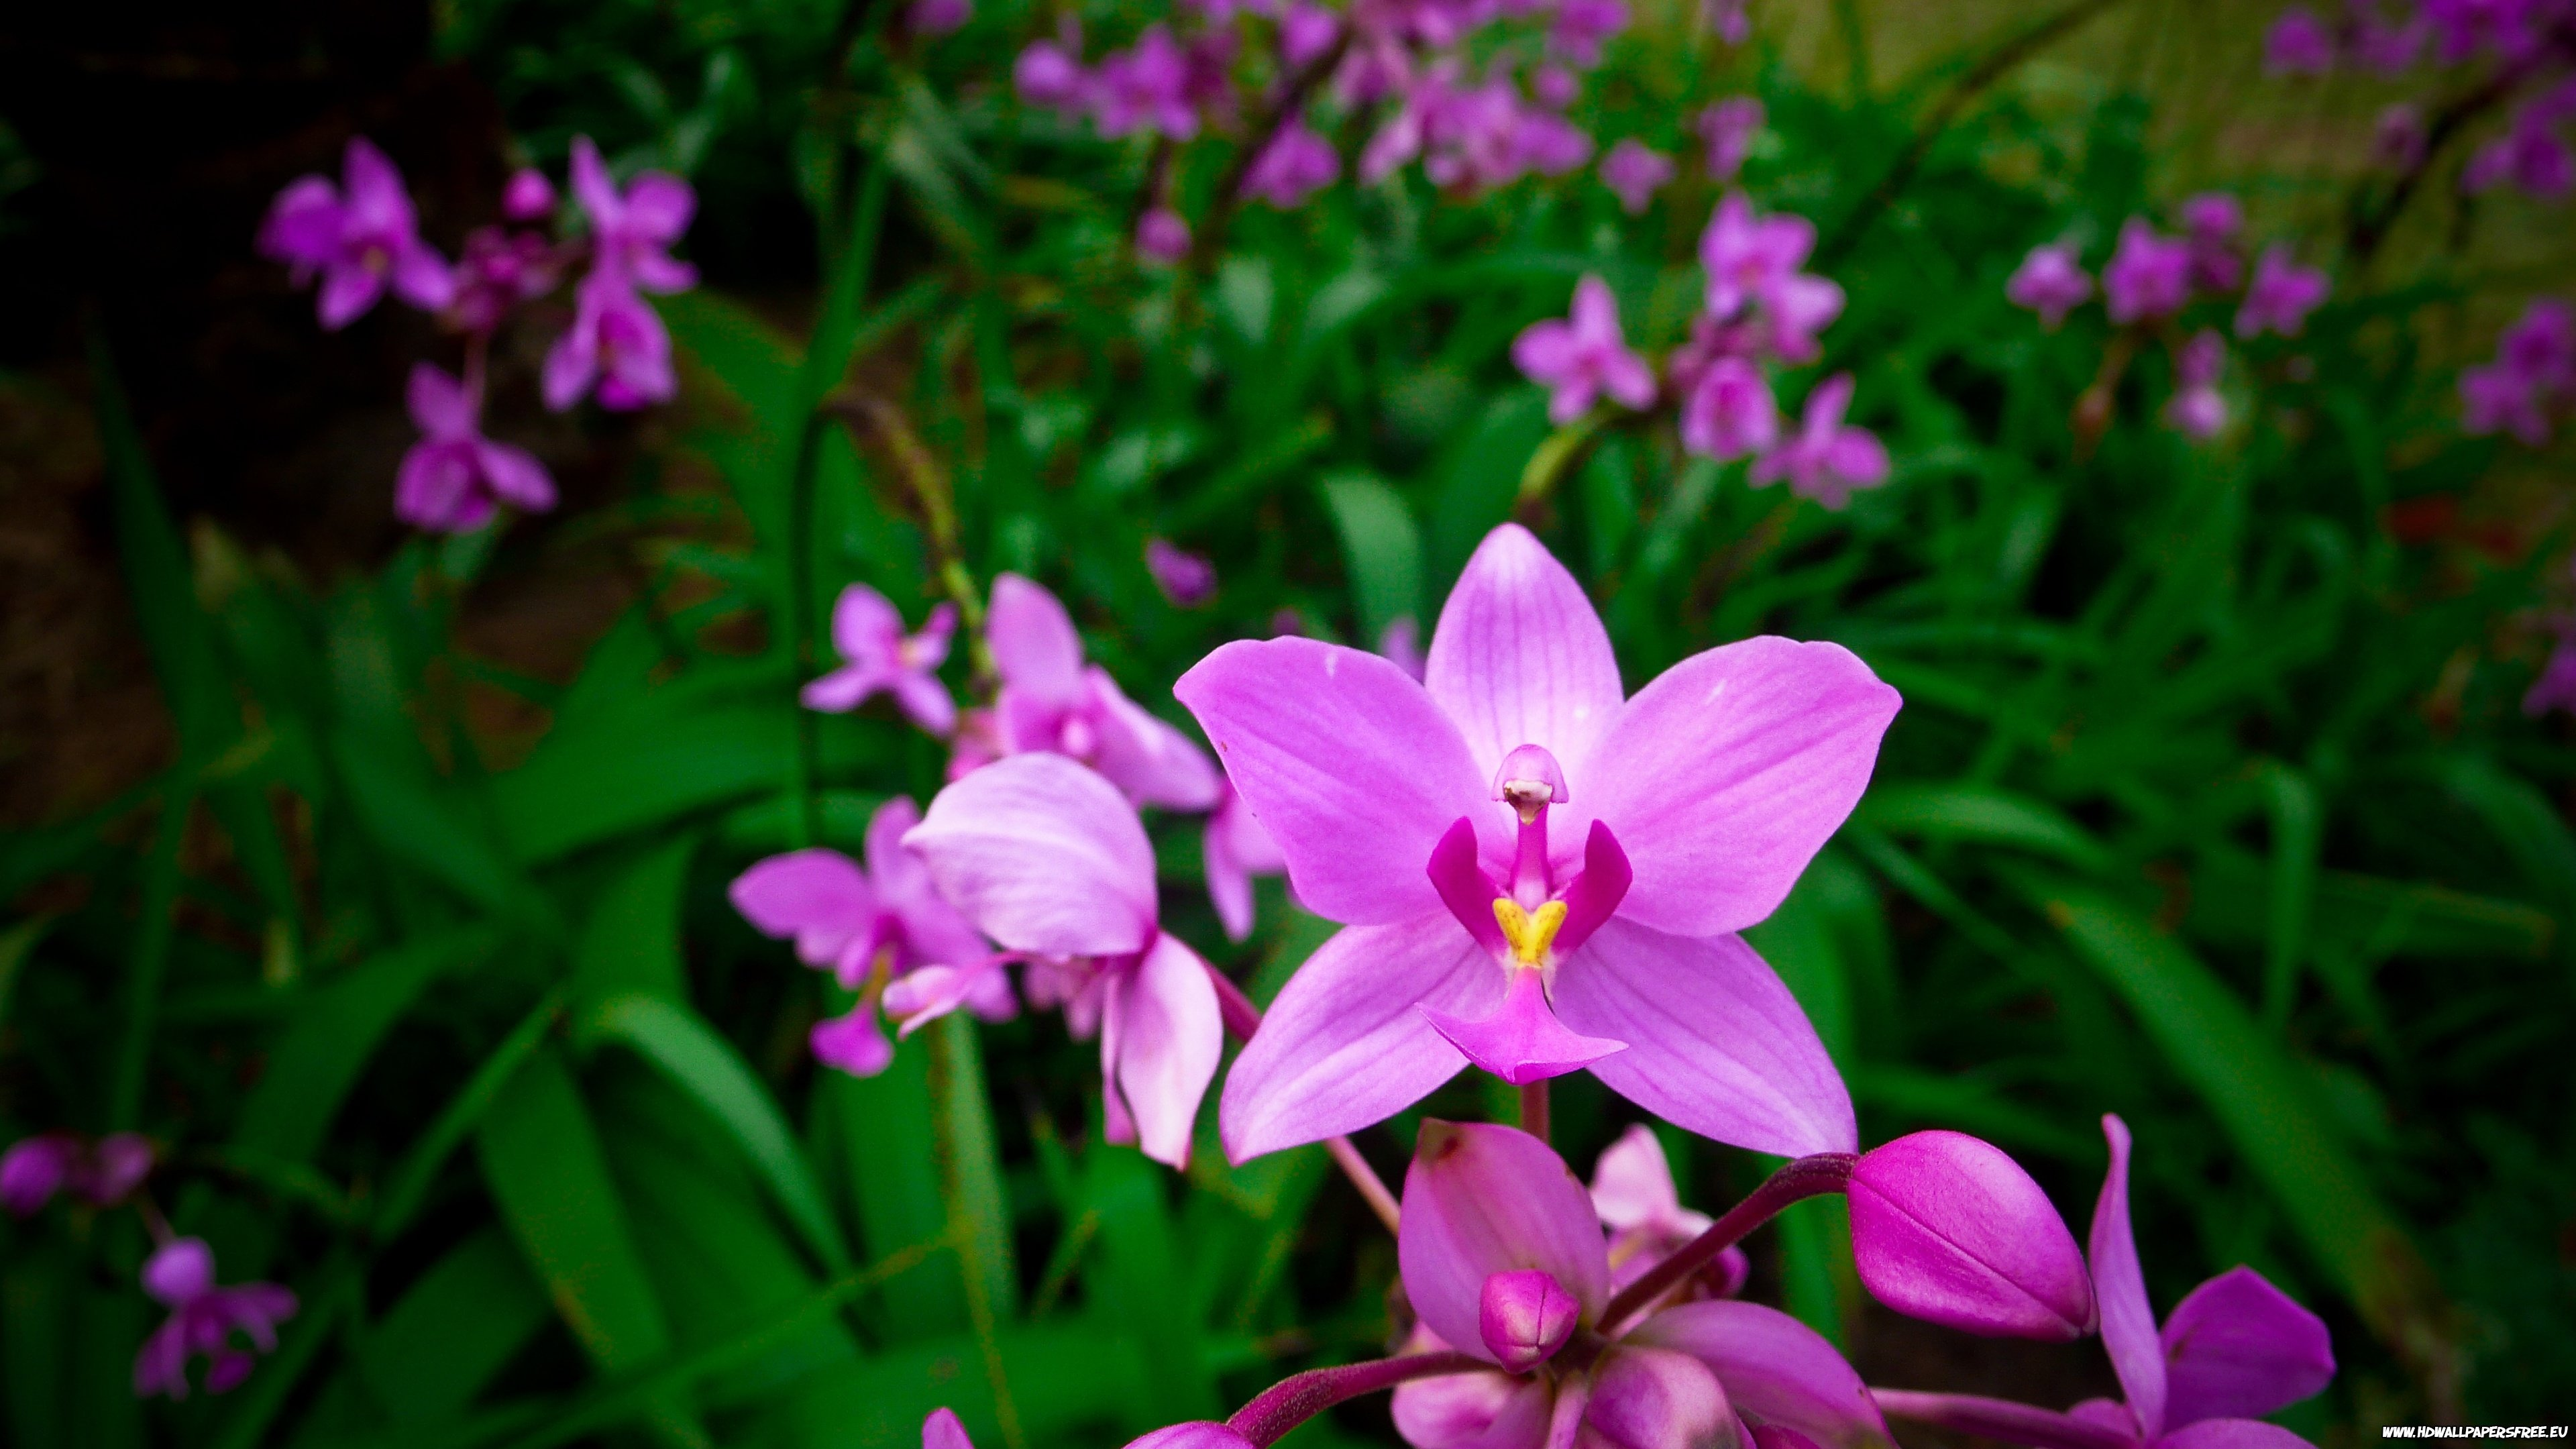 orchid background 4k 449434